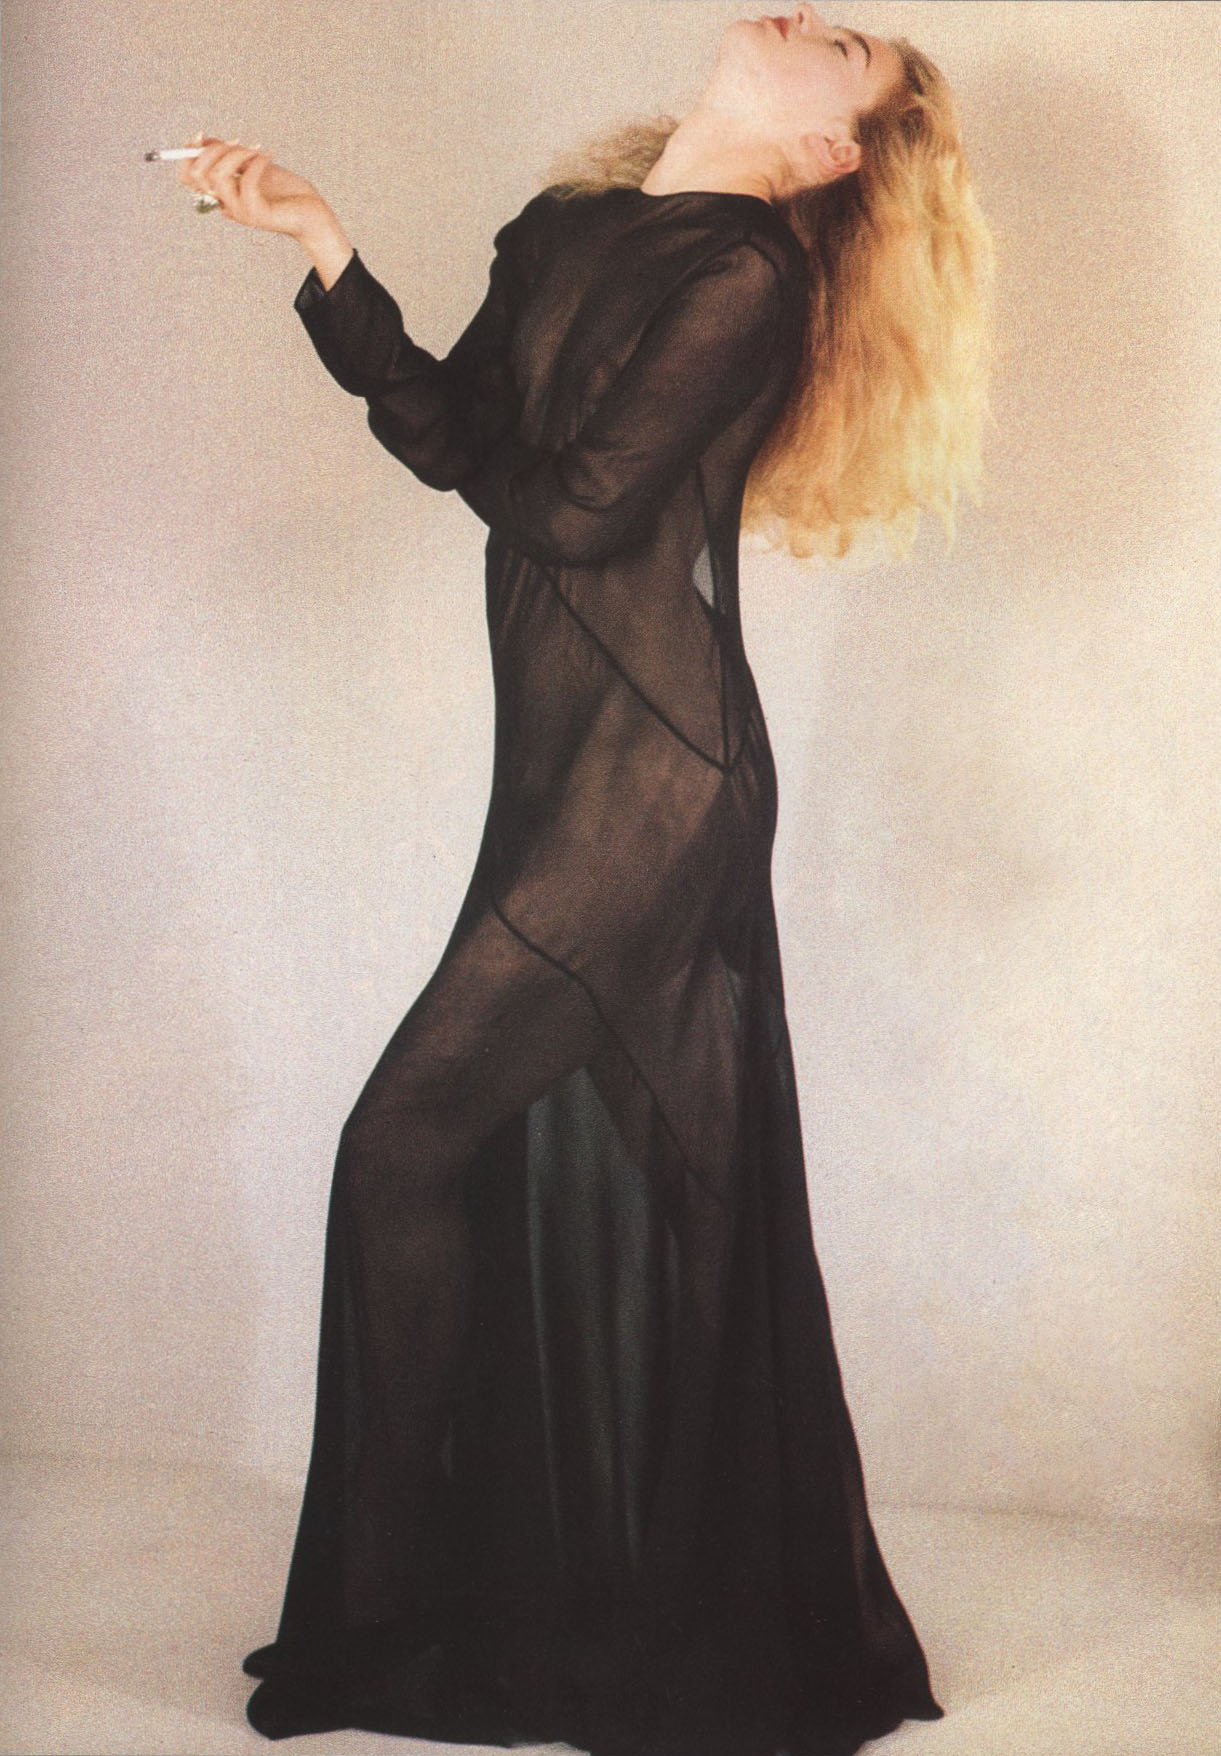 ELAINE IRWING AS LEE MILLER DRESS JOHN GALLIANO PHOTOGRAPHY SHEILA METZNER VOGUE PARIS N°695  APRIL 1989